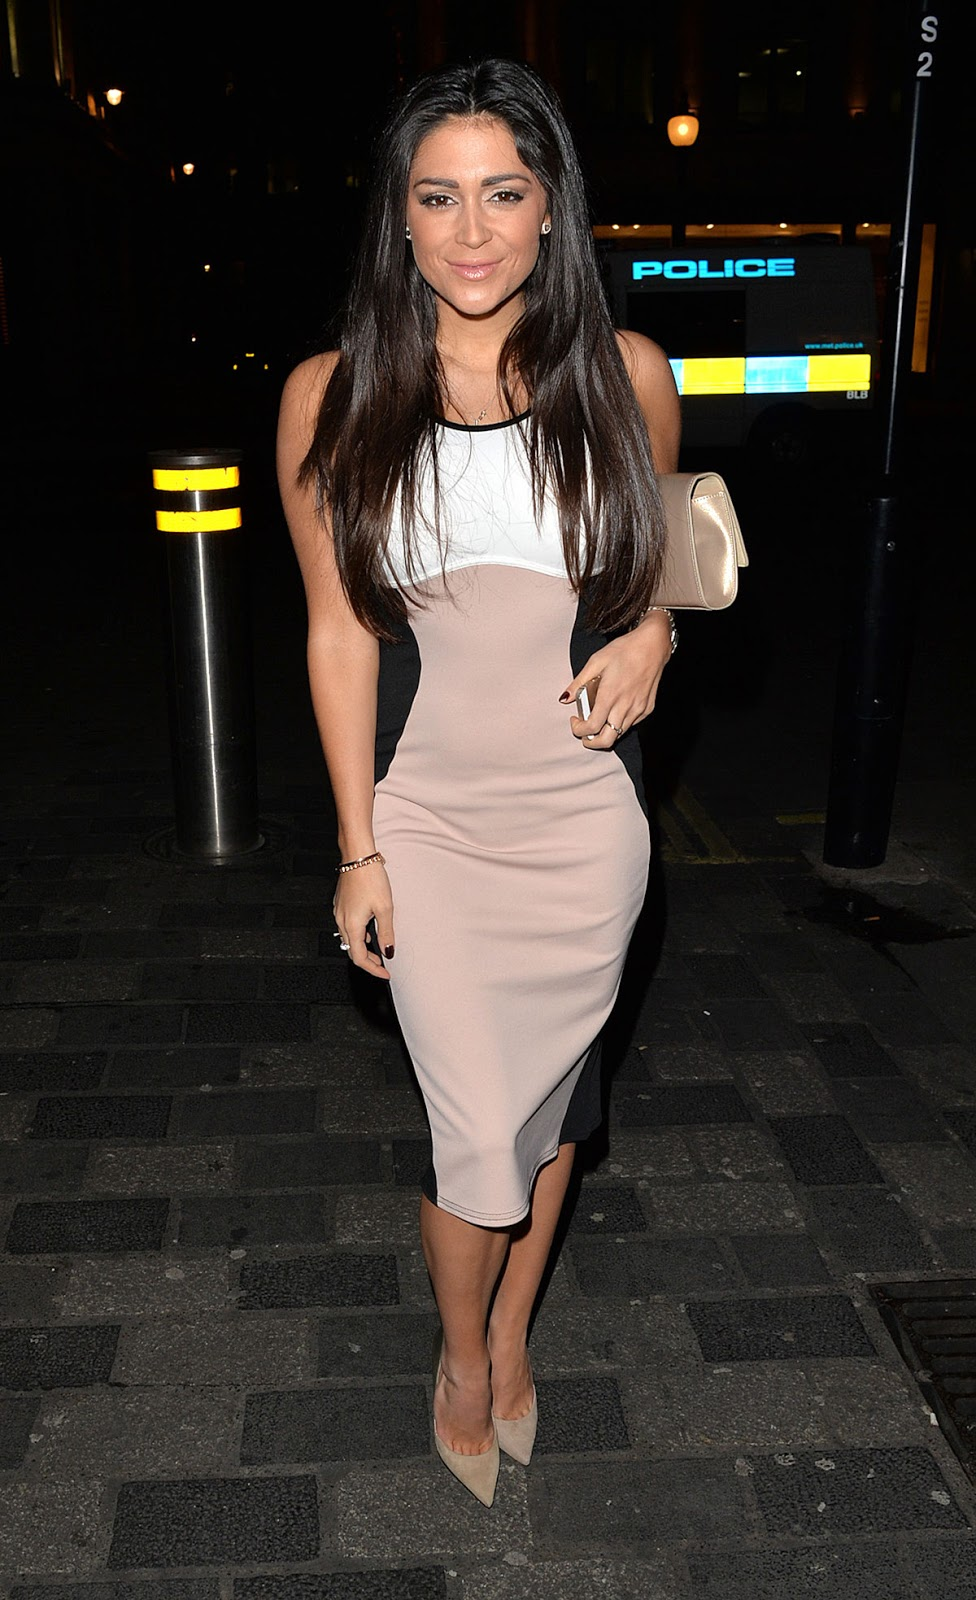 Full HQ Photos of Casey Batchelor Night Out In Mayfair